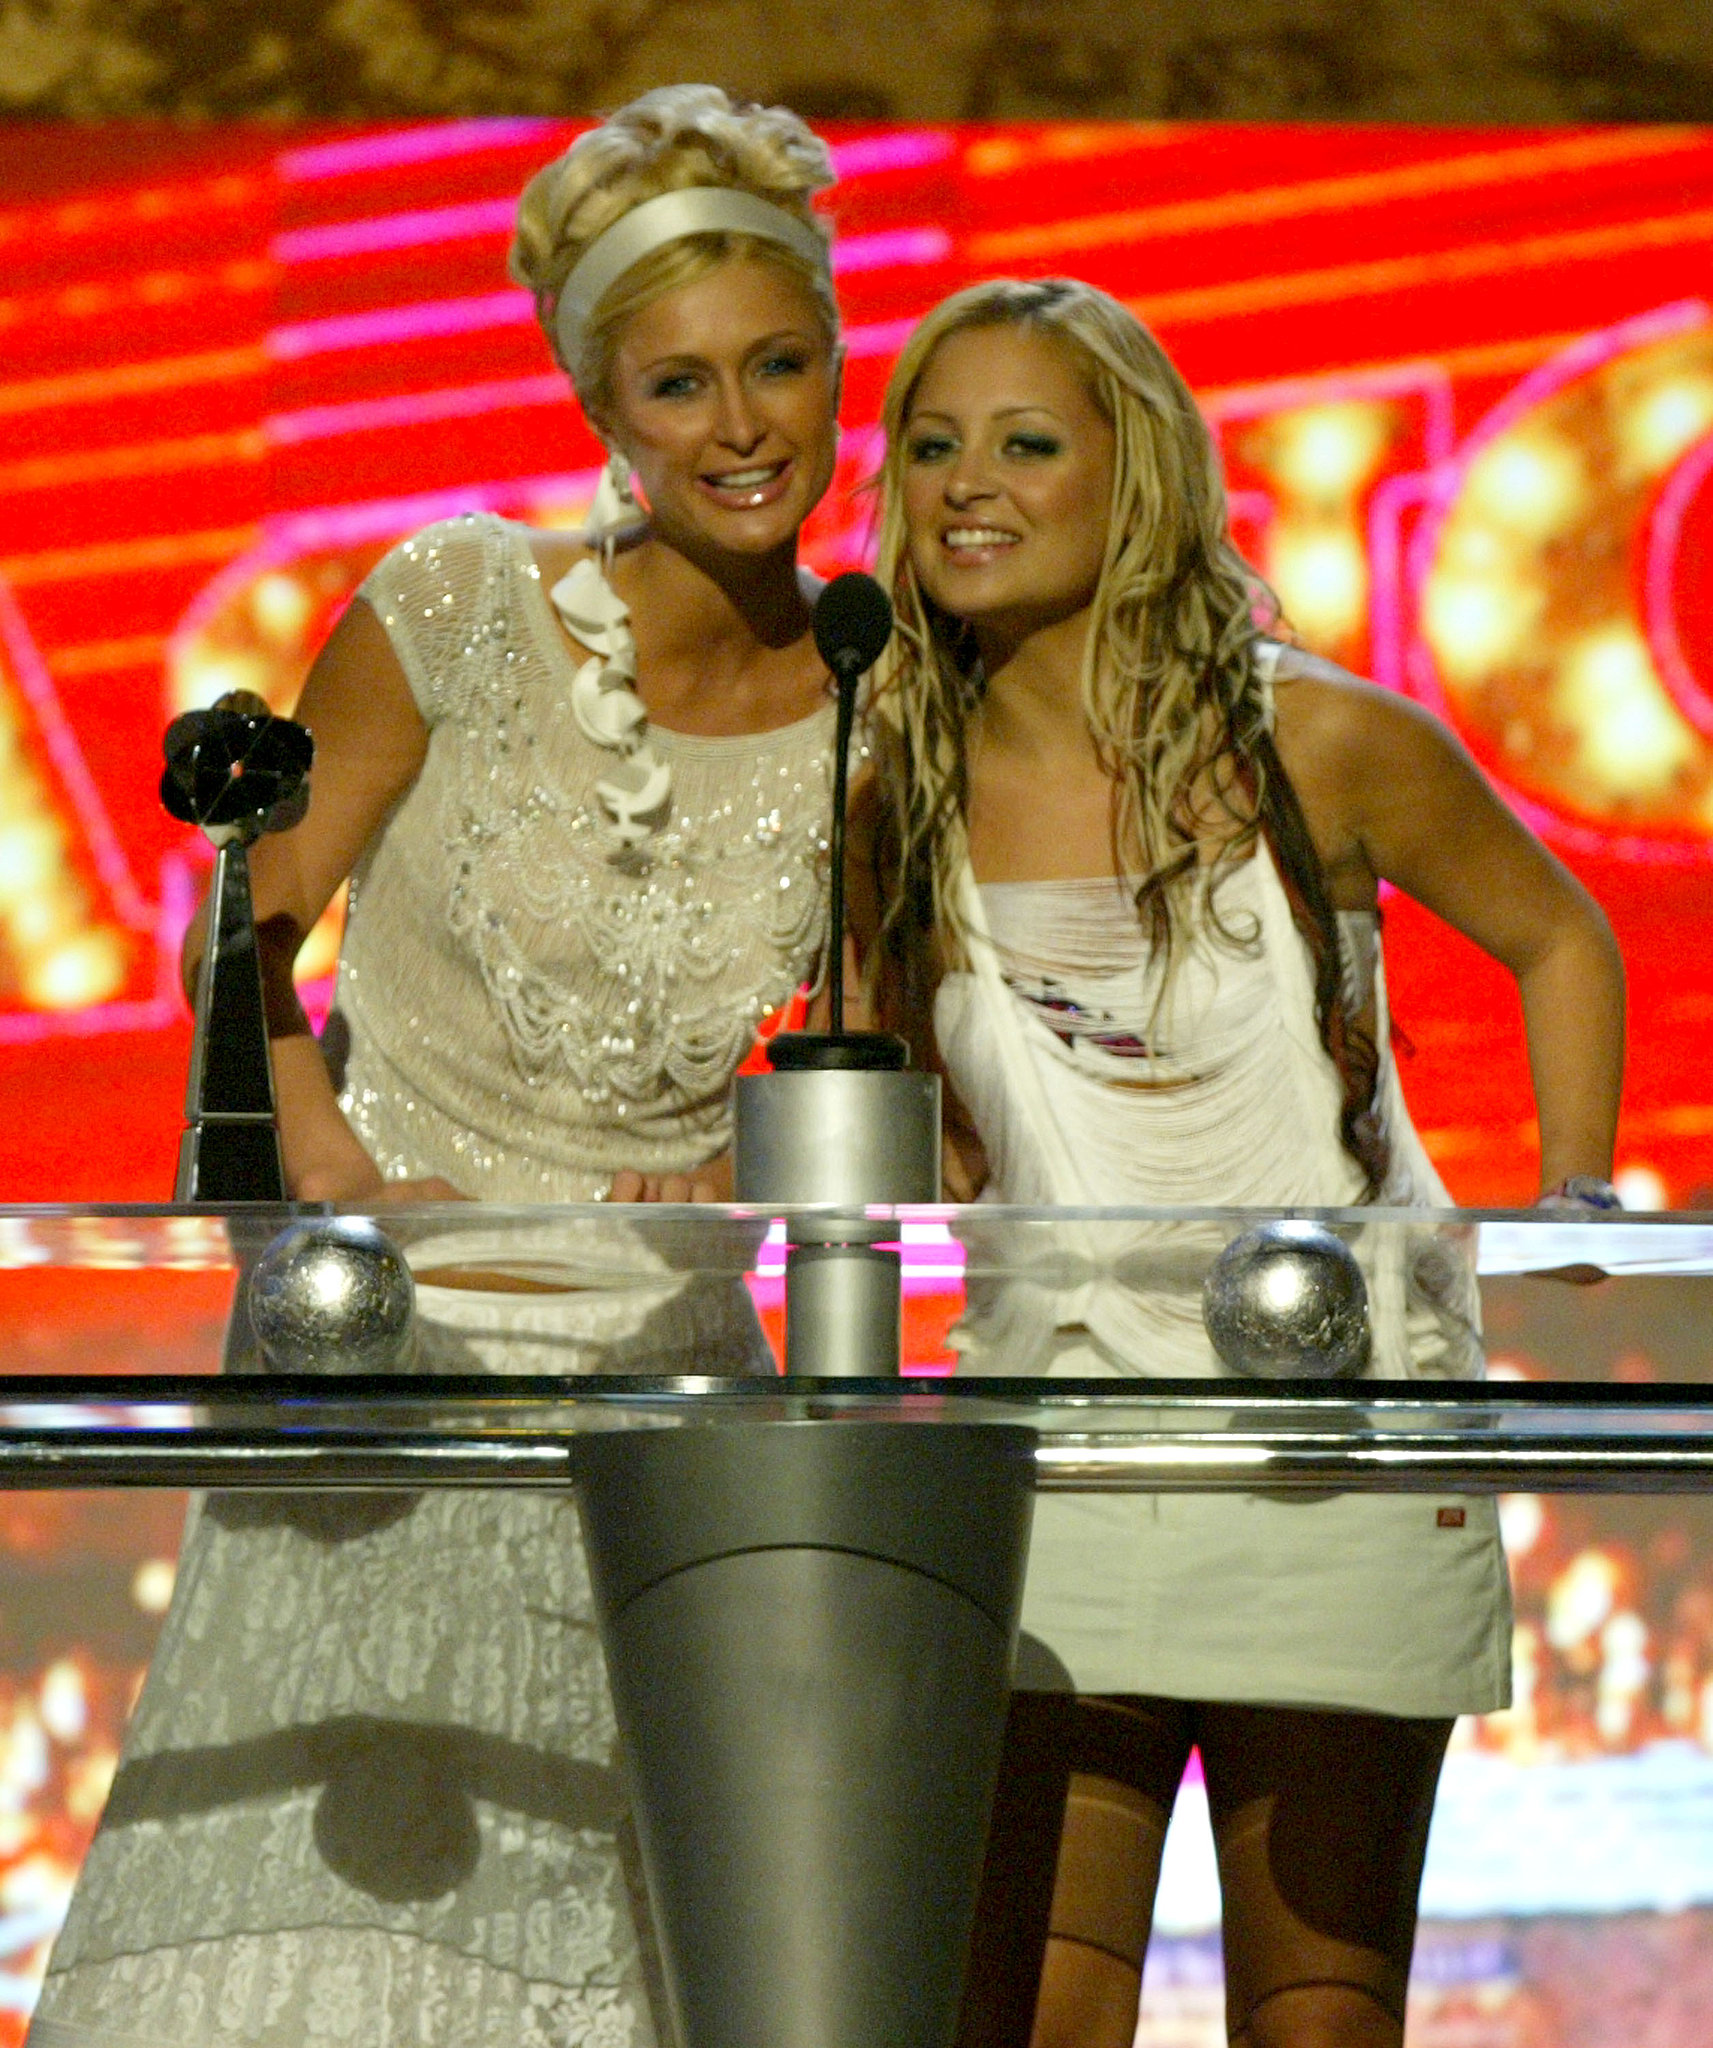 They hit the stage together to present at the Billboard Music Awards in December 2003.